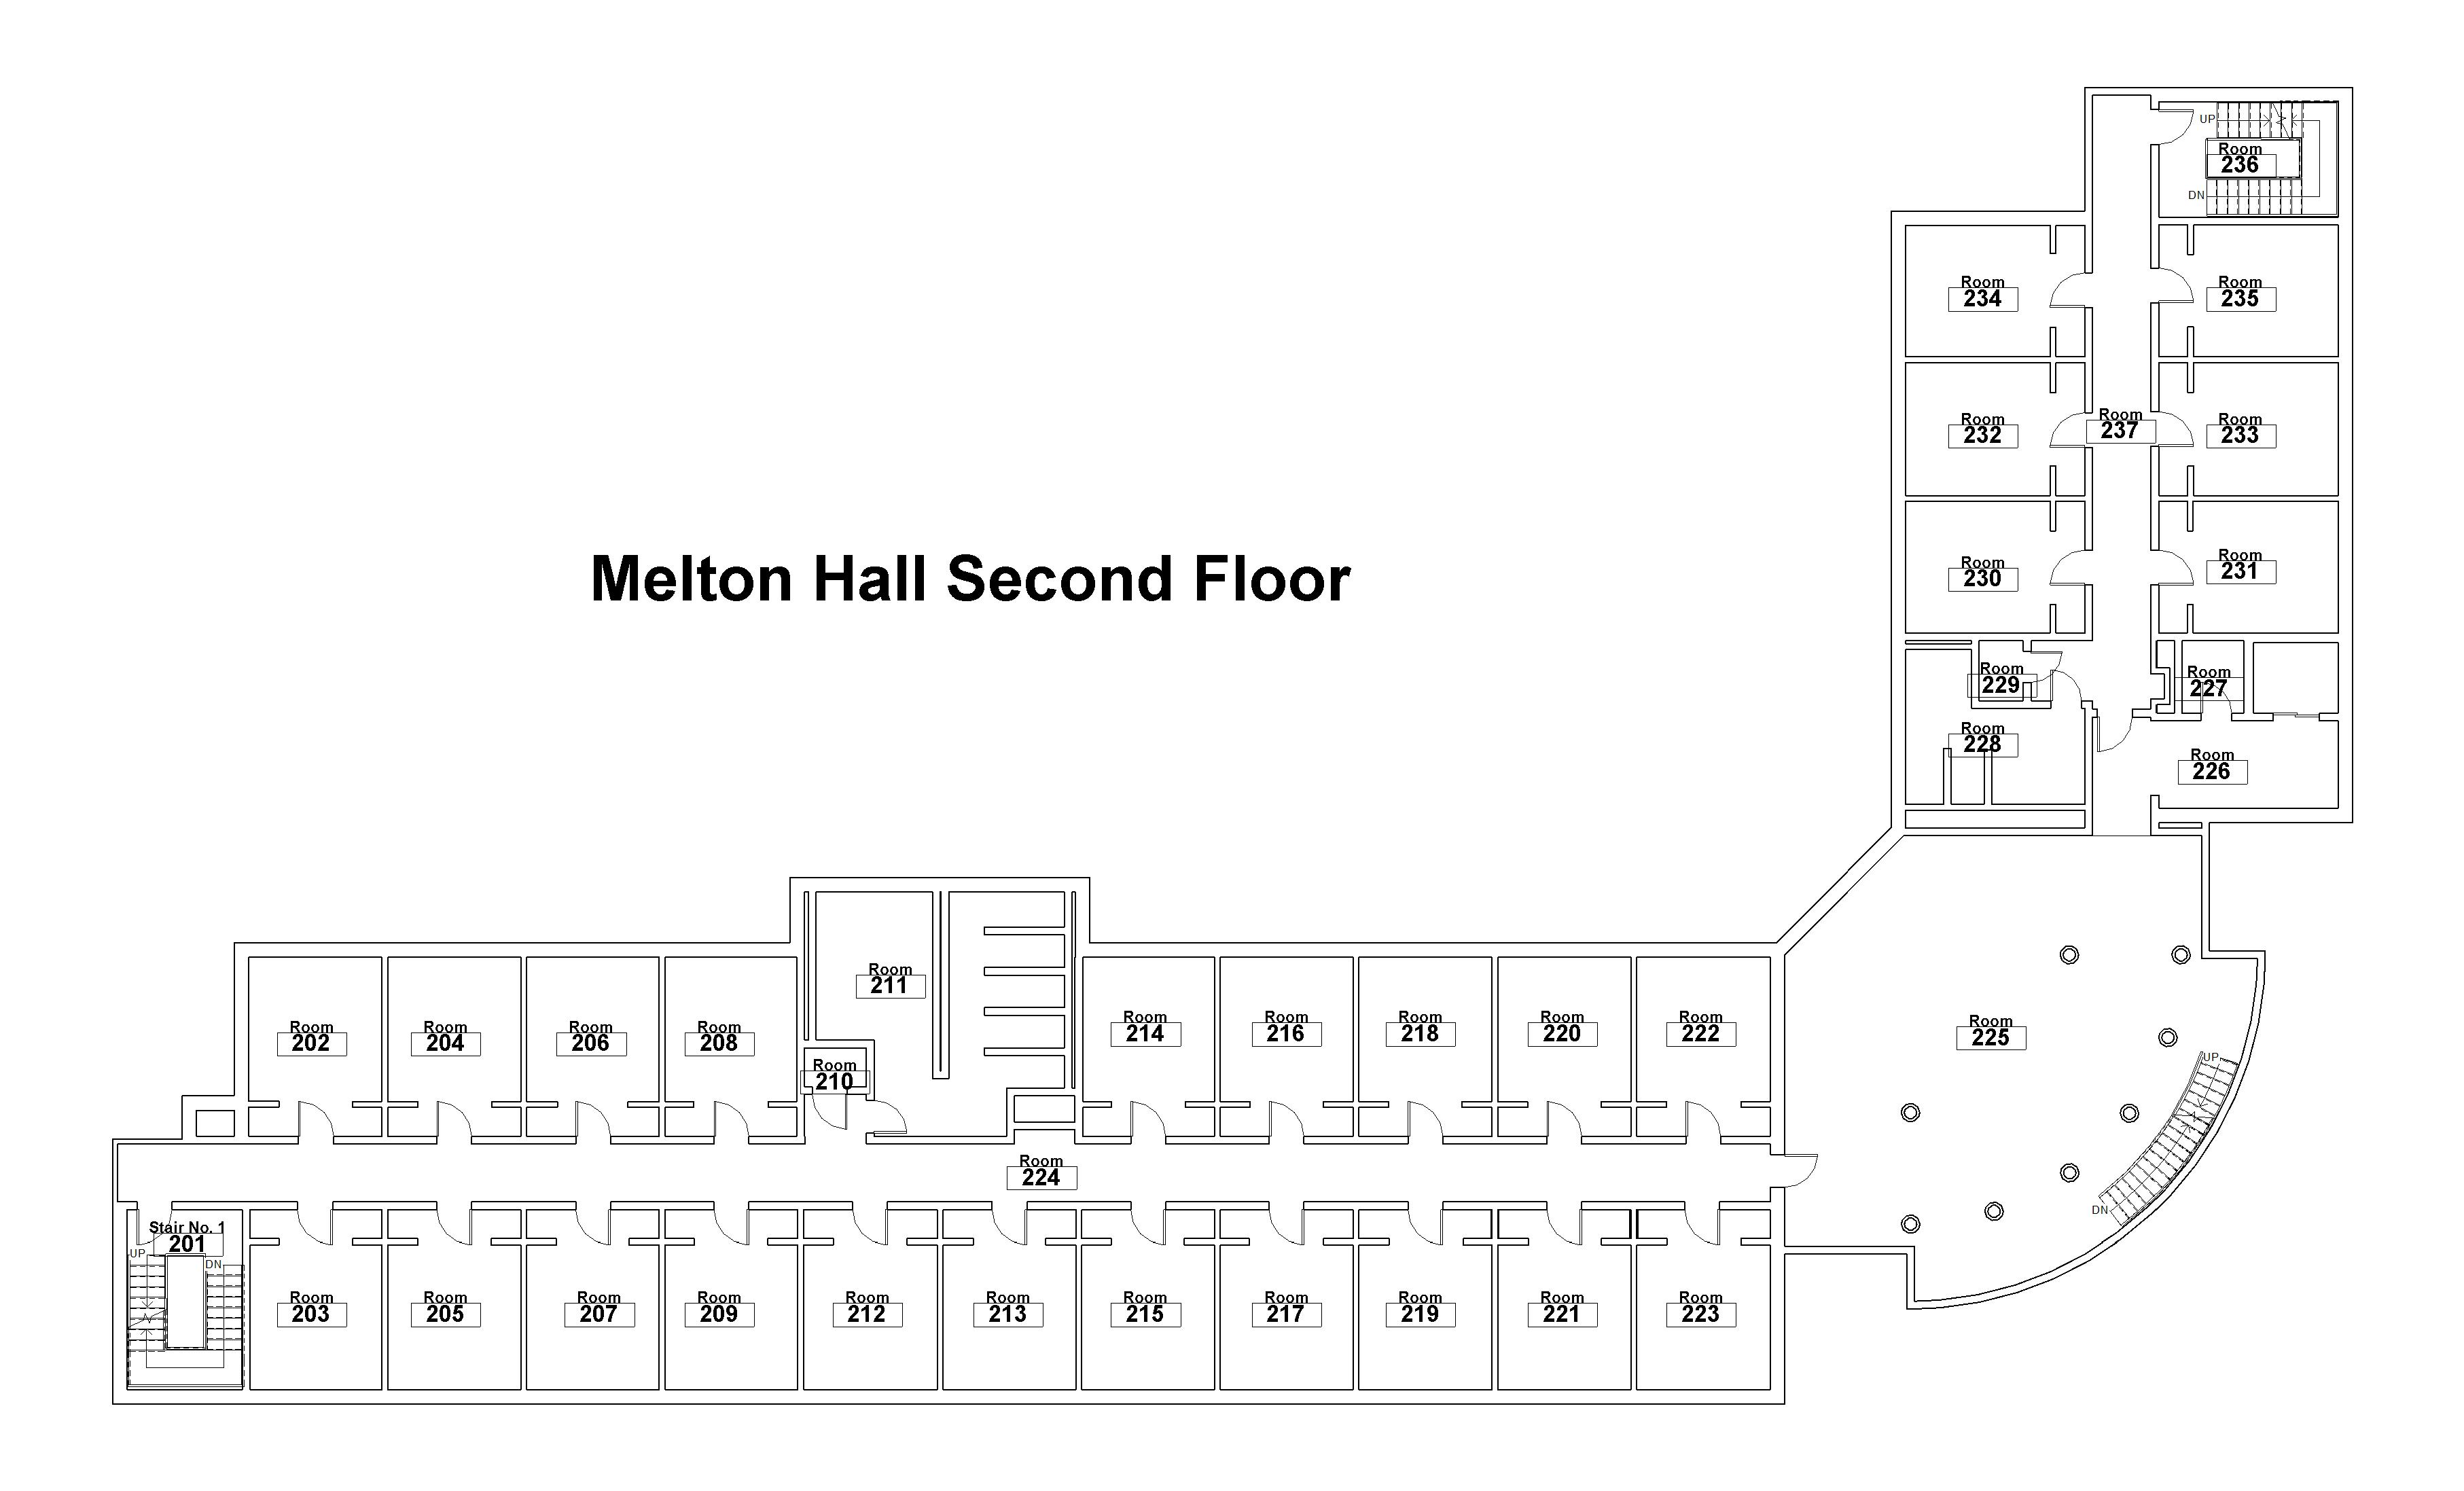 building-floorplan-melton-hall-floor-two